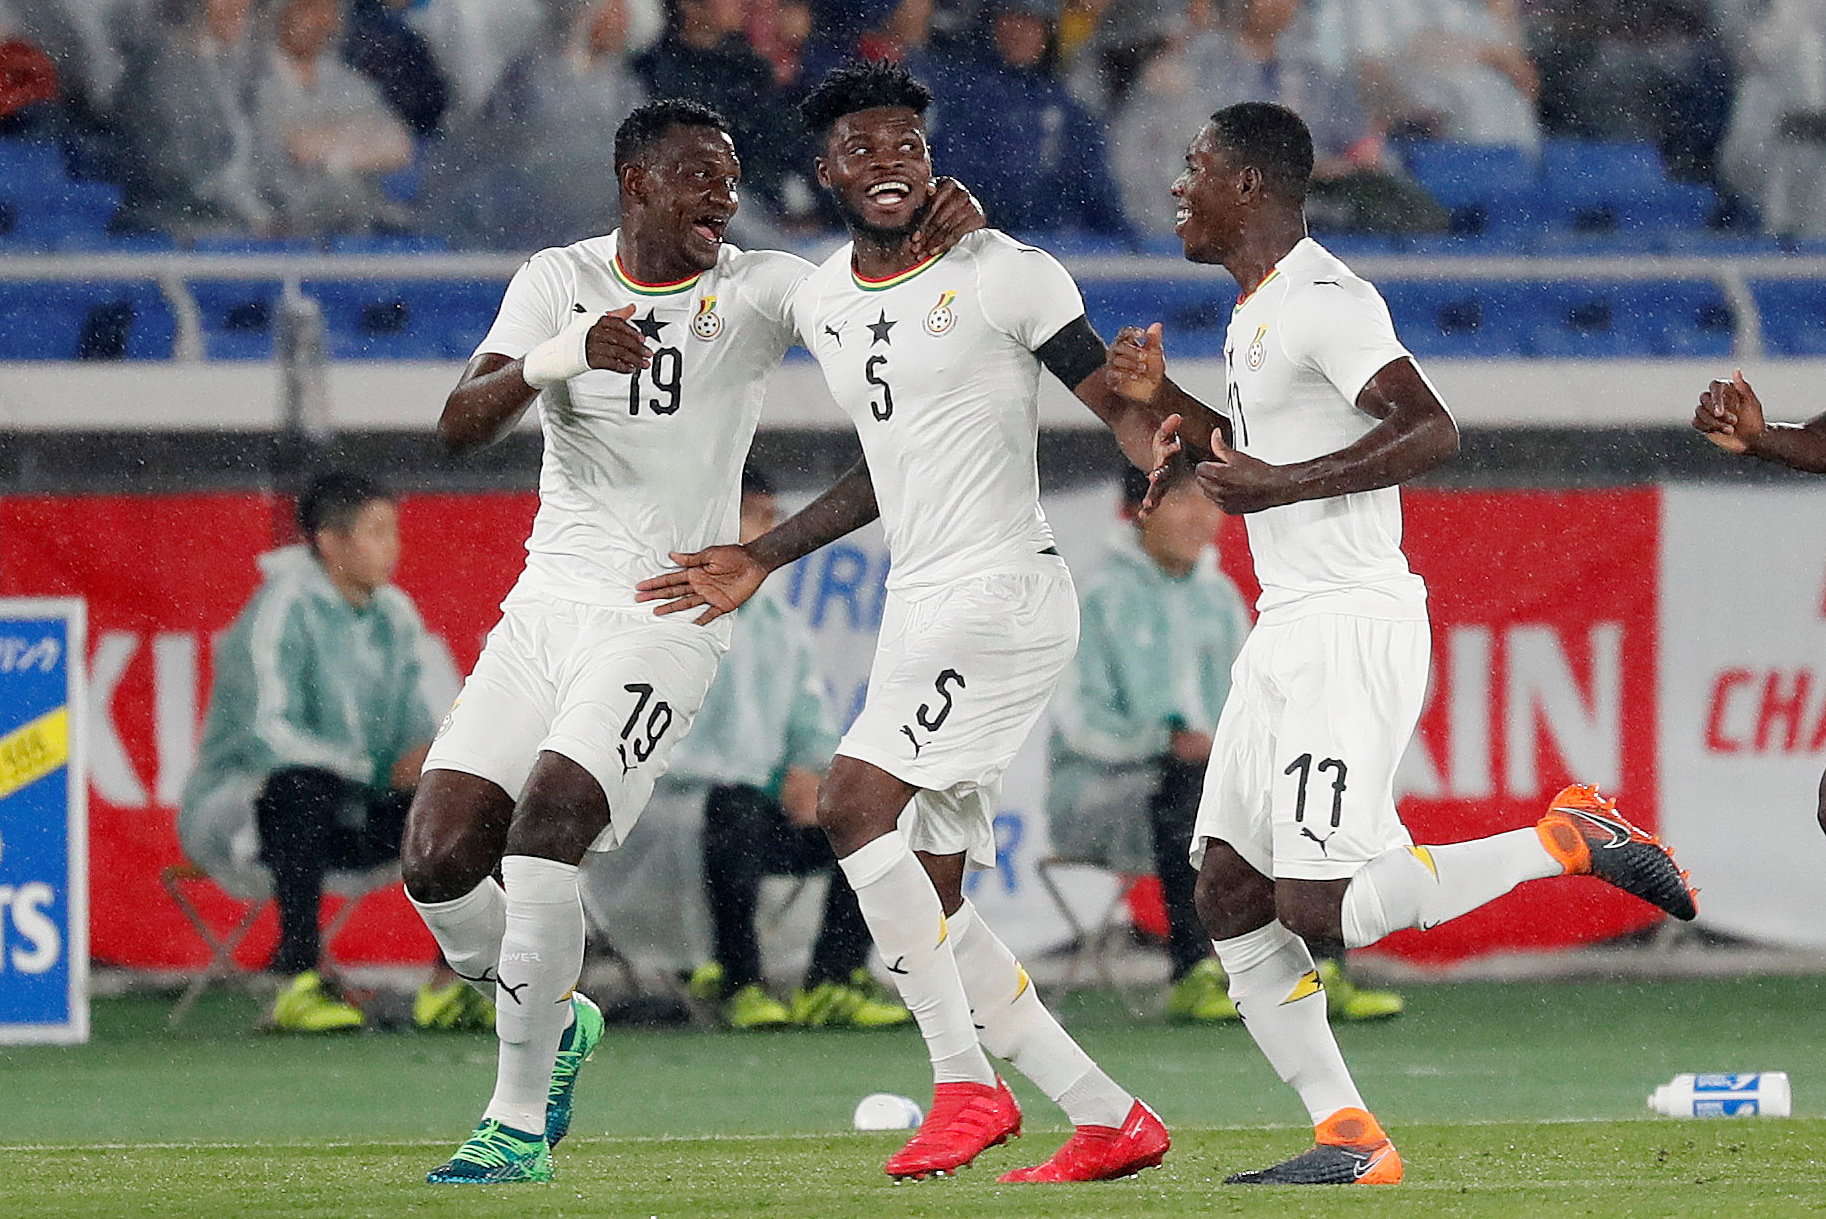 Kassim, Partey shine in Black Stars 2-2 stalemate against Iceland